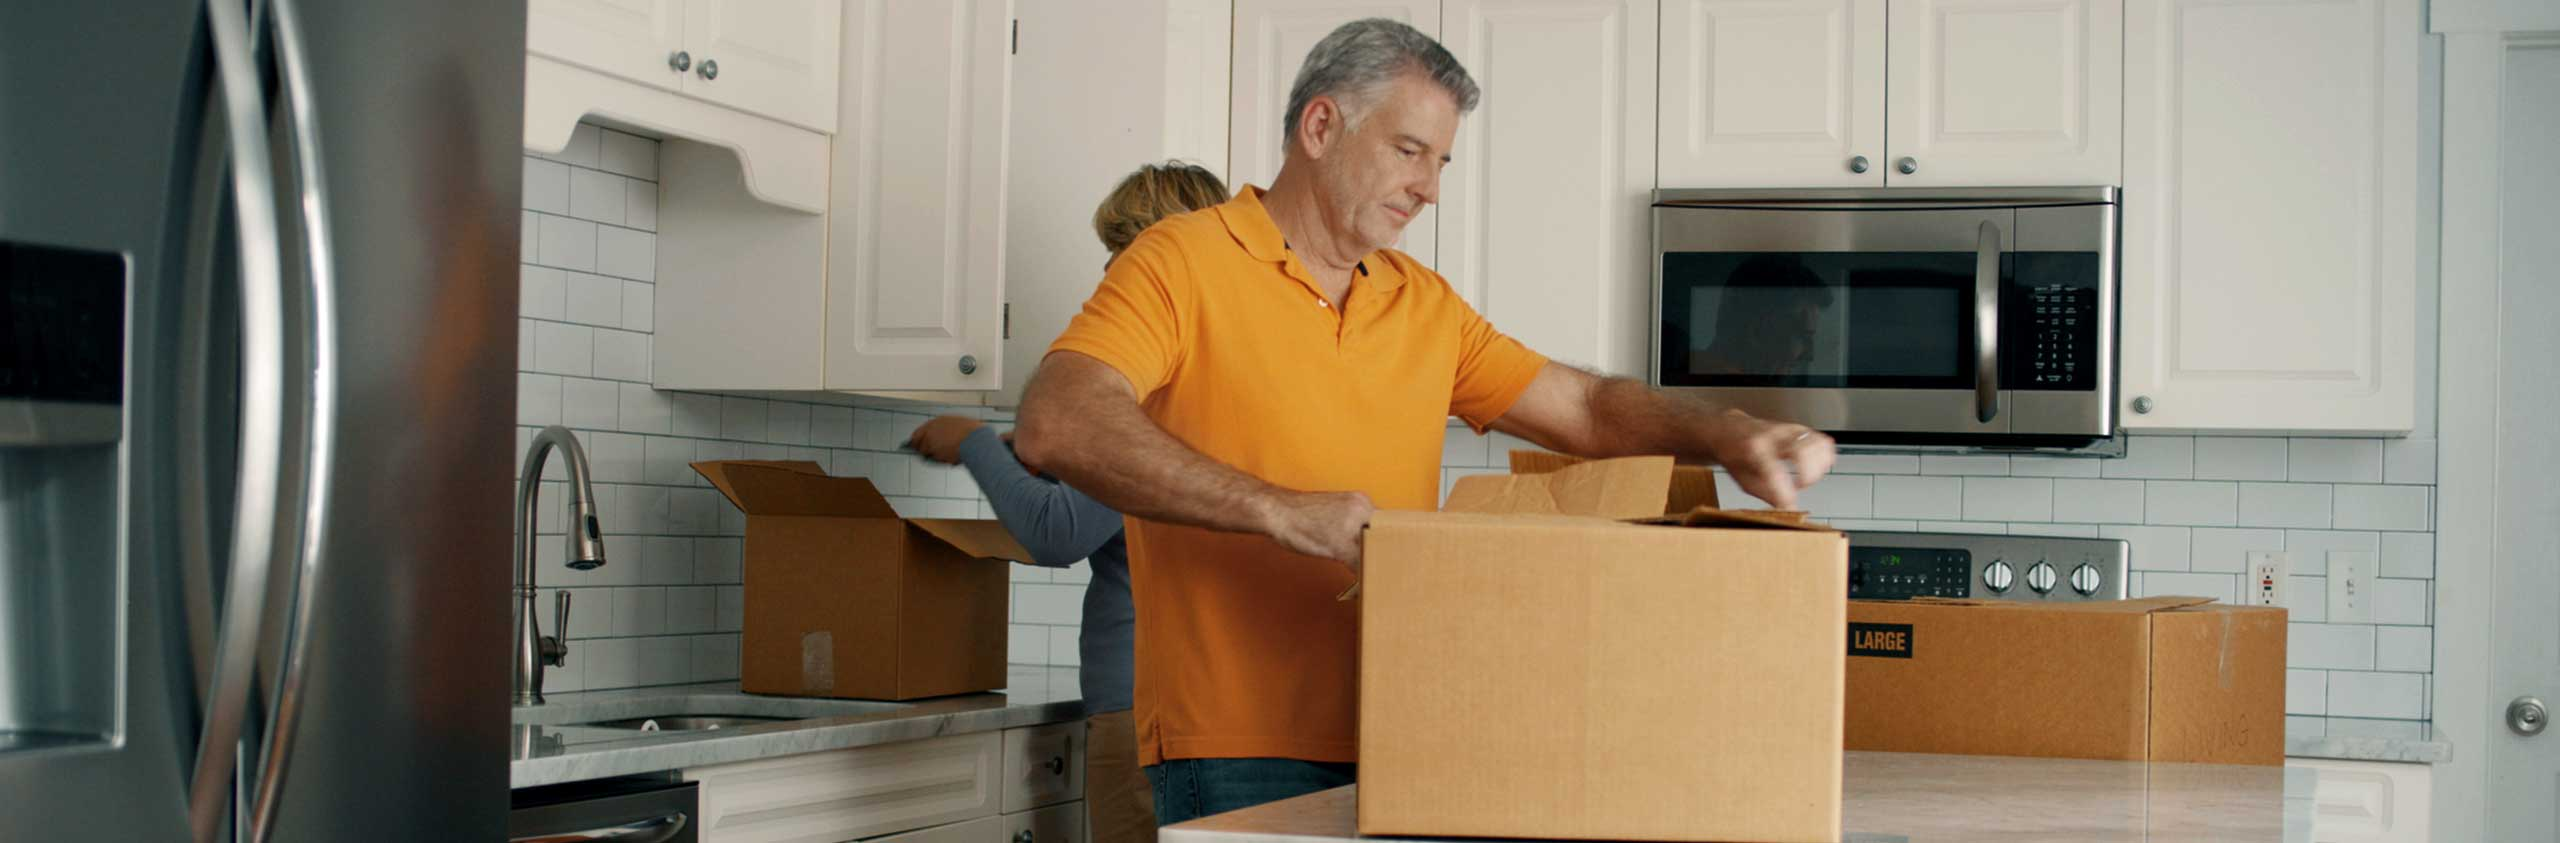 Rental Trucks Near Me >> Help Find Moving Services & Storage Units Near Me | PODS